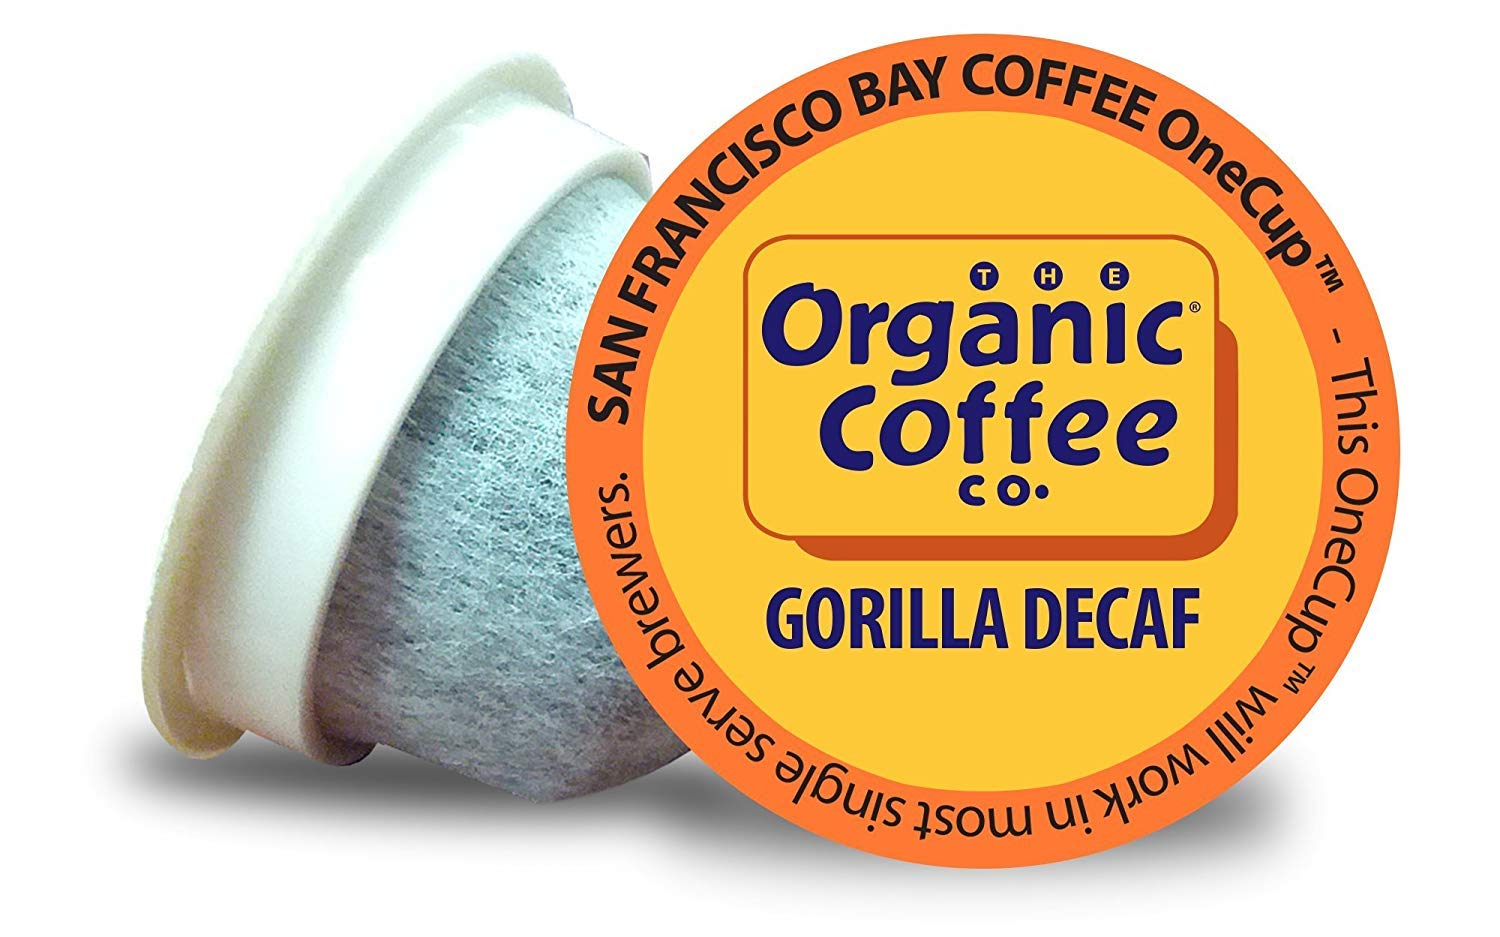 The Organic Coffee Co. OneCup Gorilla DECAF, Single Serve Coffee K-Cup Pods (80 Count) Keurig Compatible, Swiss Water Process- Decafeinated, USDA Organic